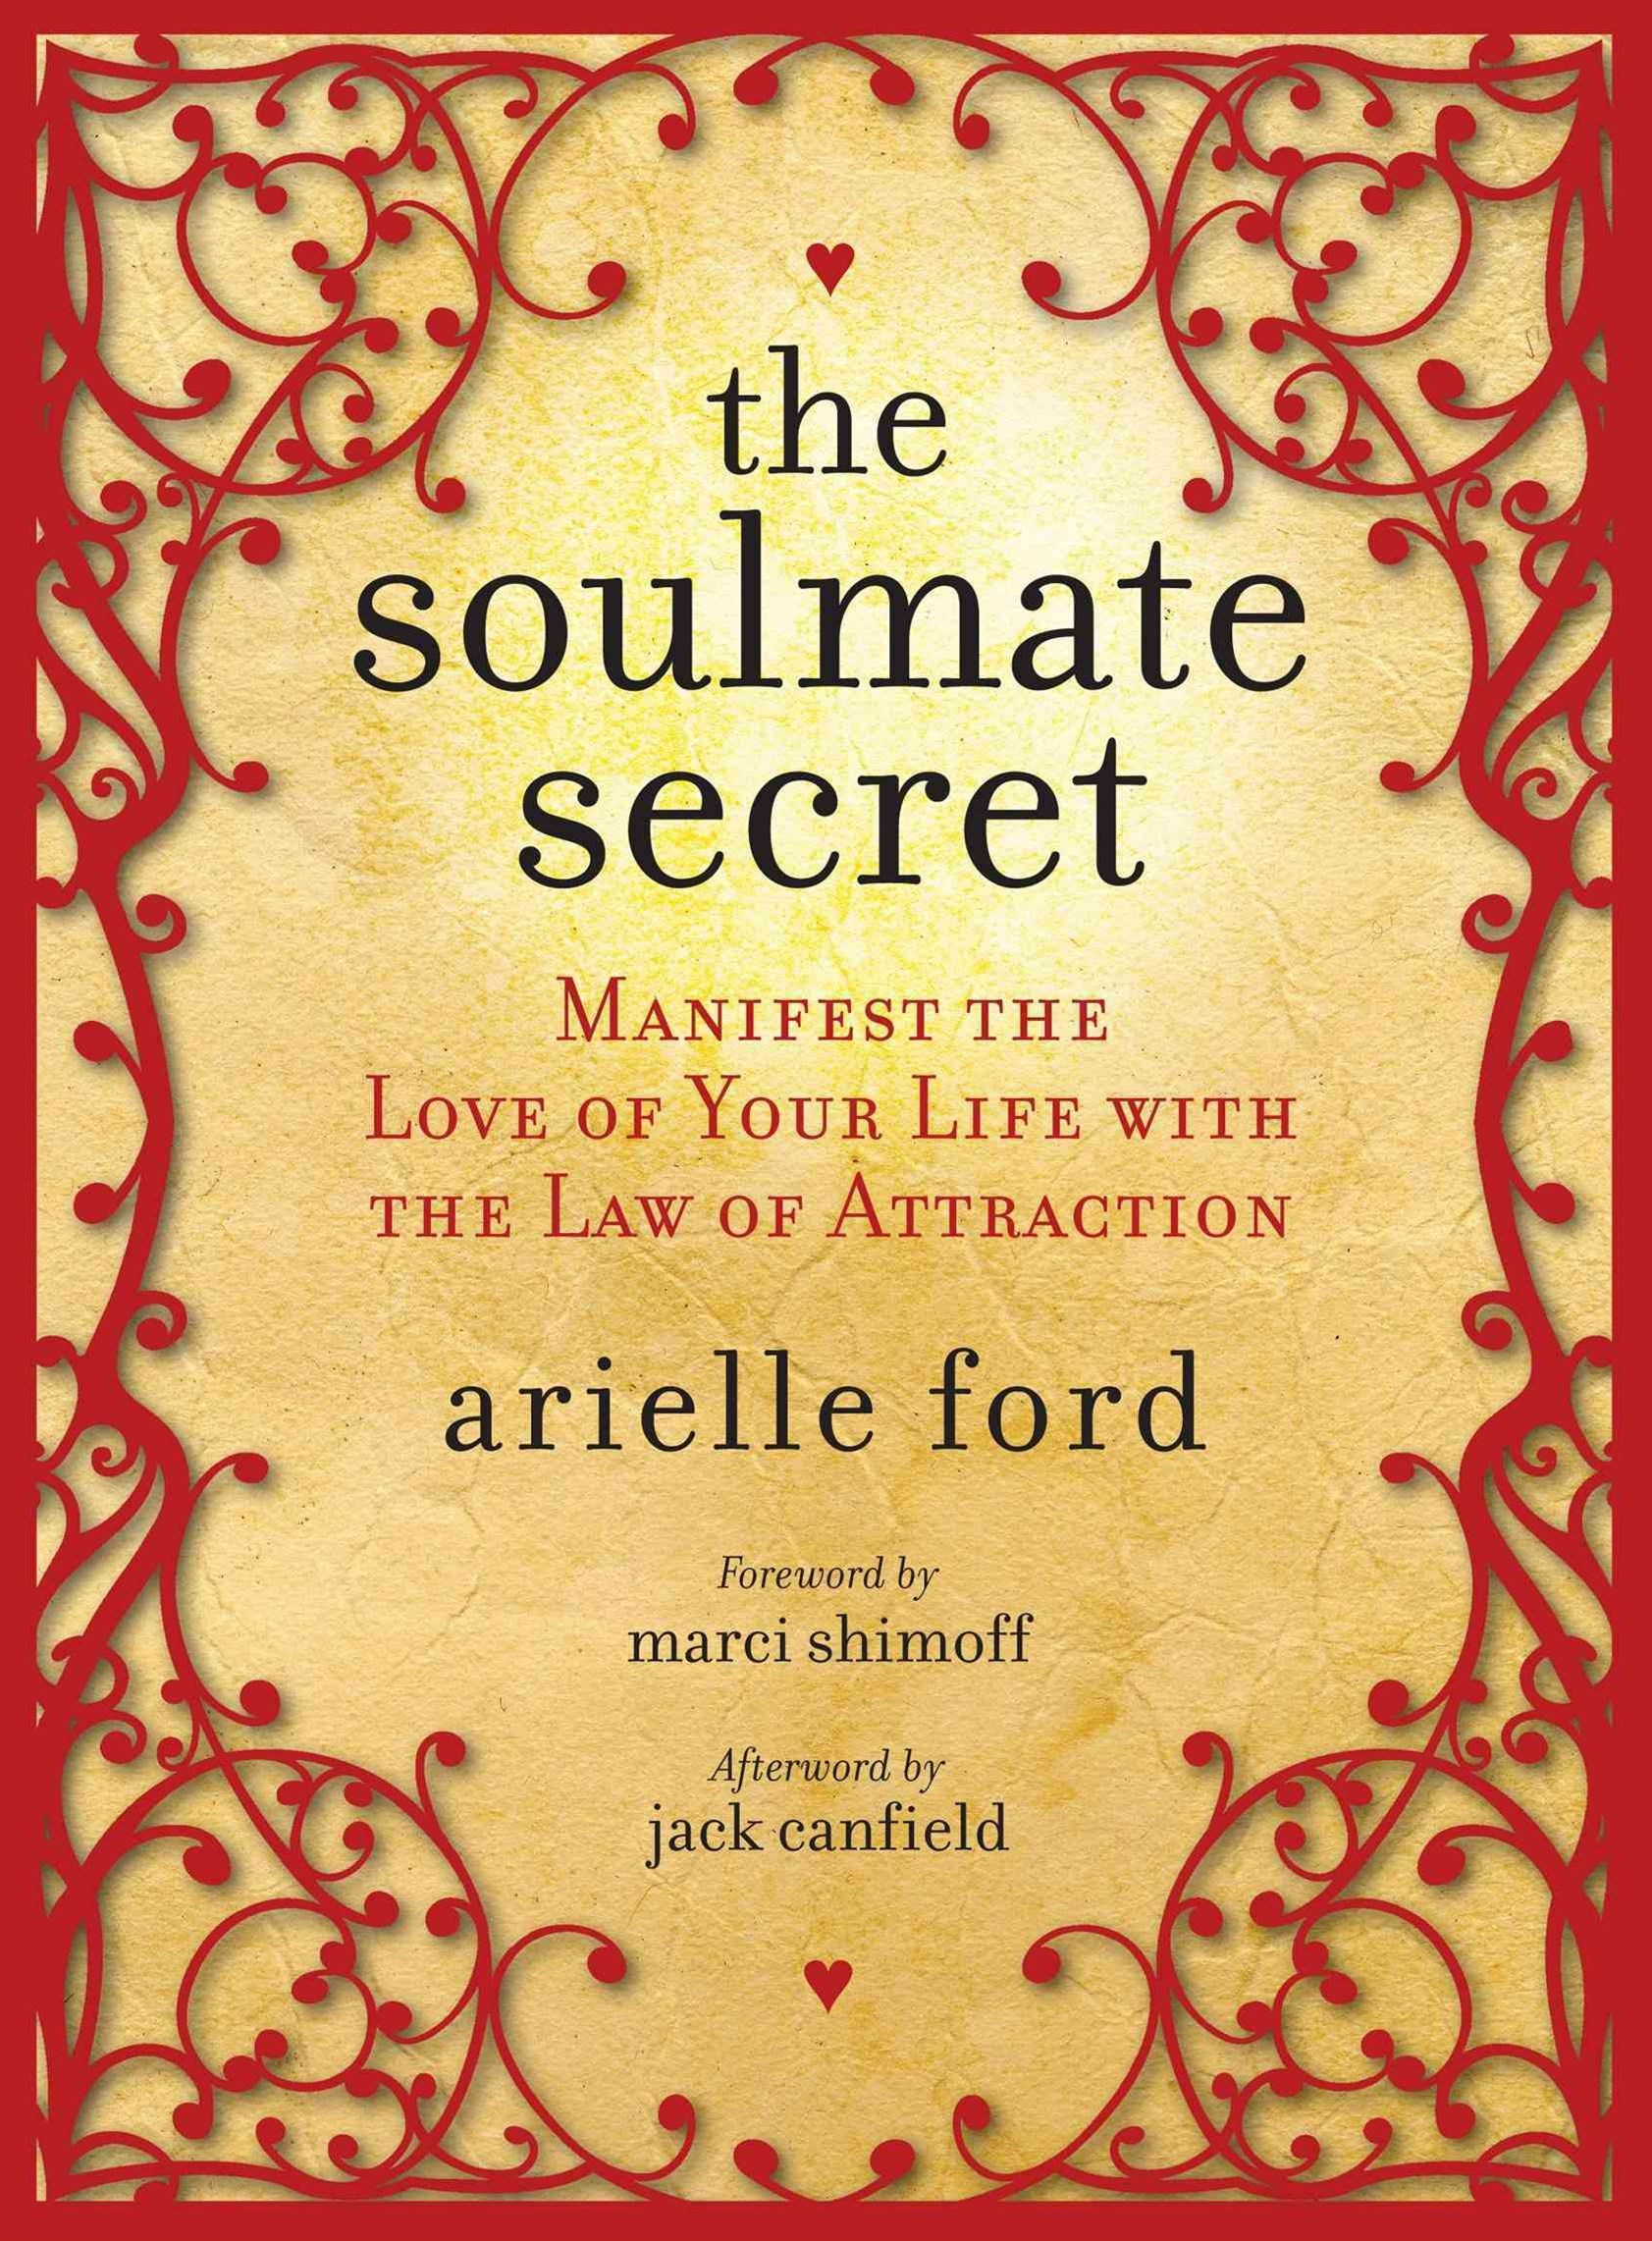 Soulmate Secrets: Manifest the Love of Your Life with the Law of Attraction